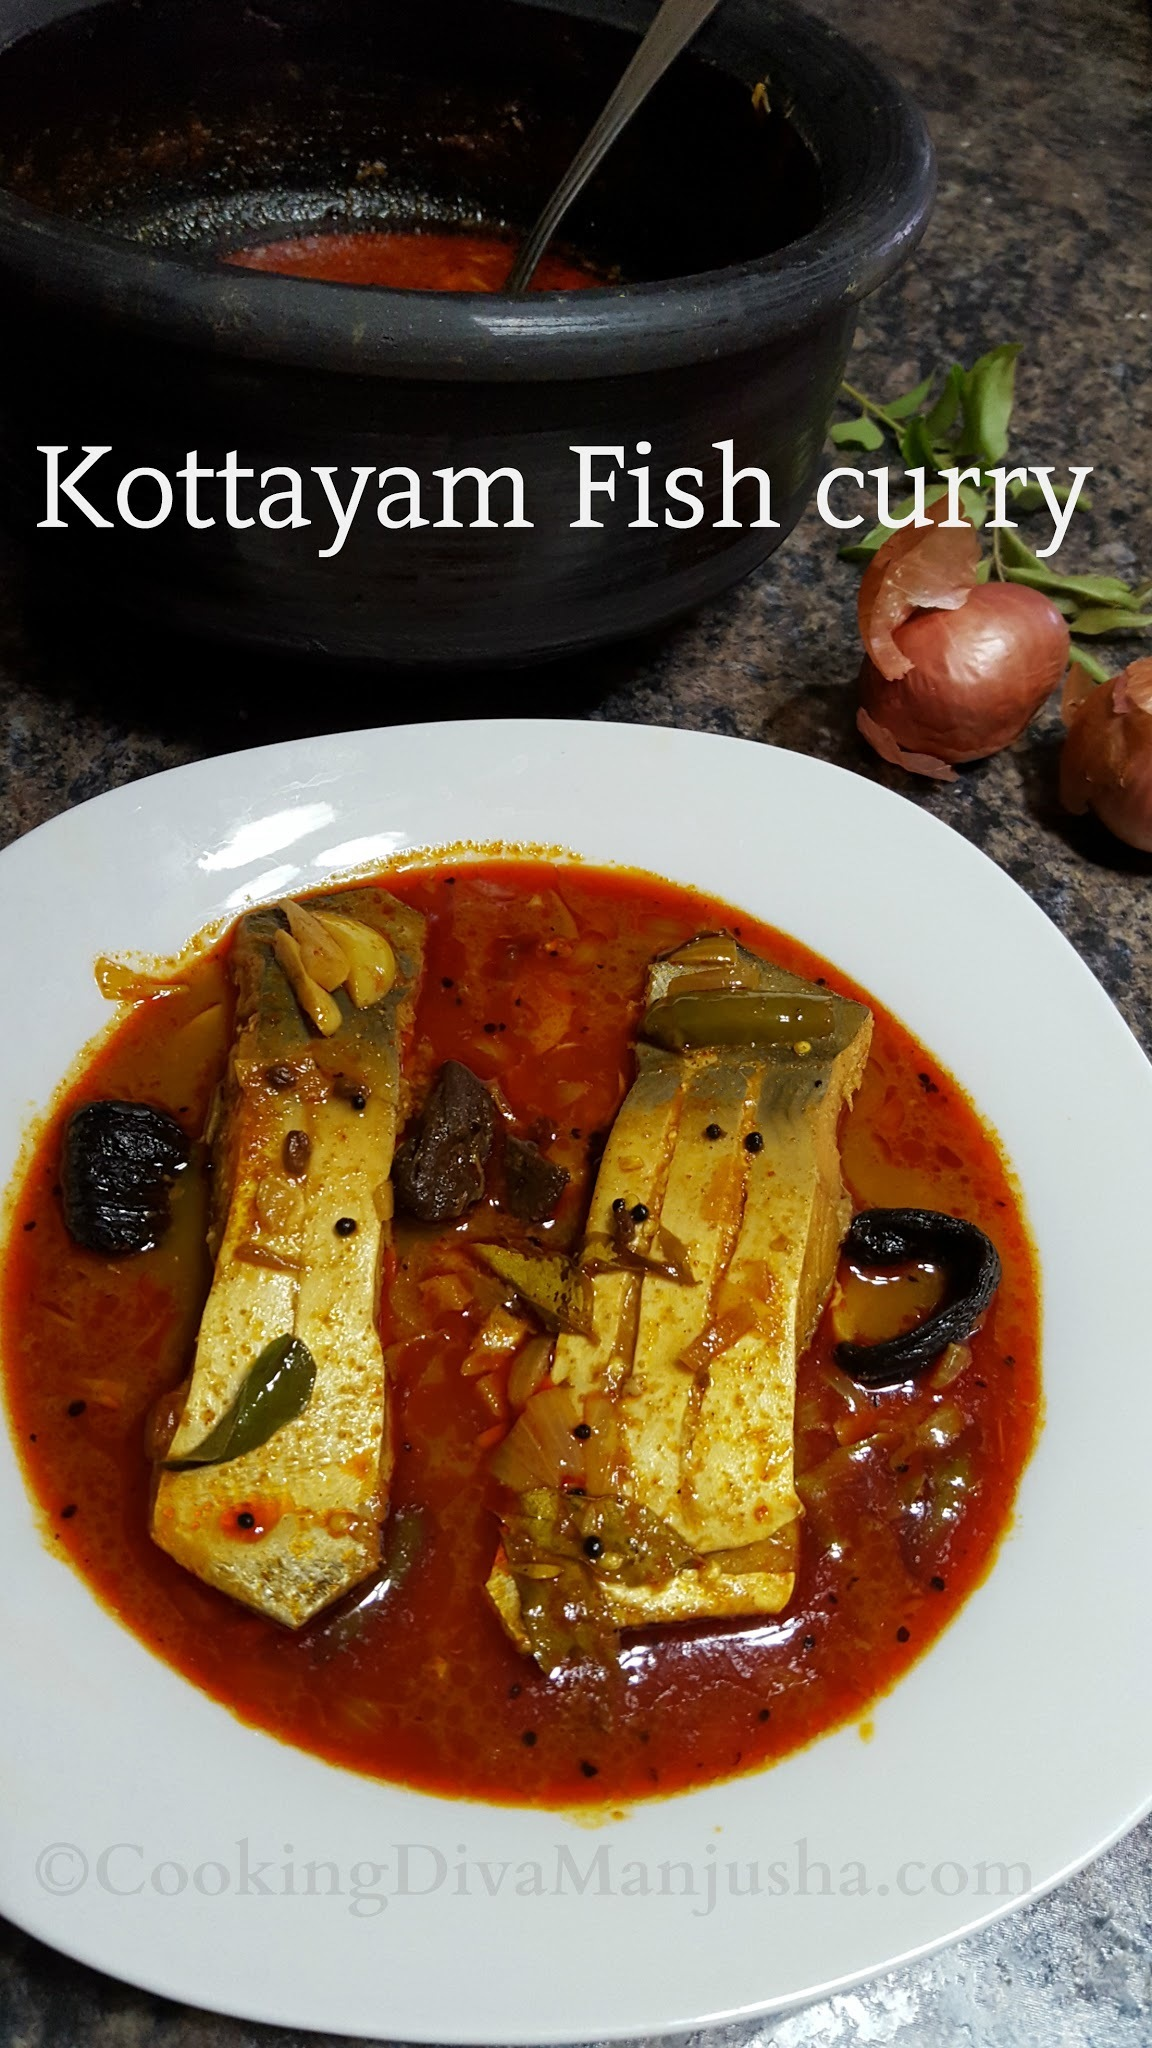 Kottayam fish curry |Nadan fish curry from Kerala